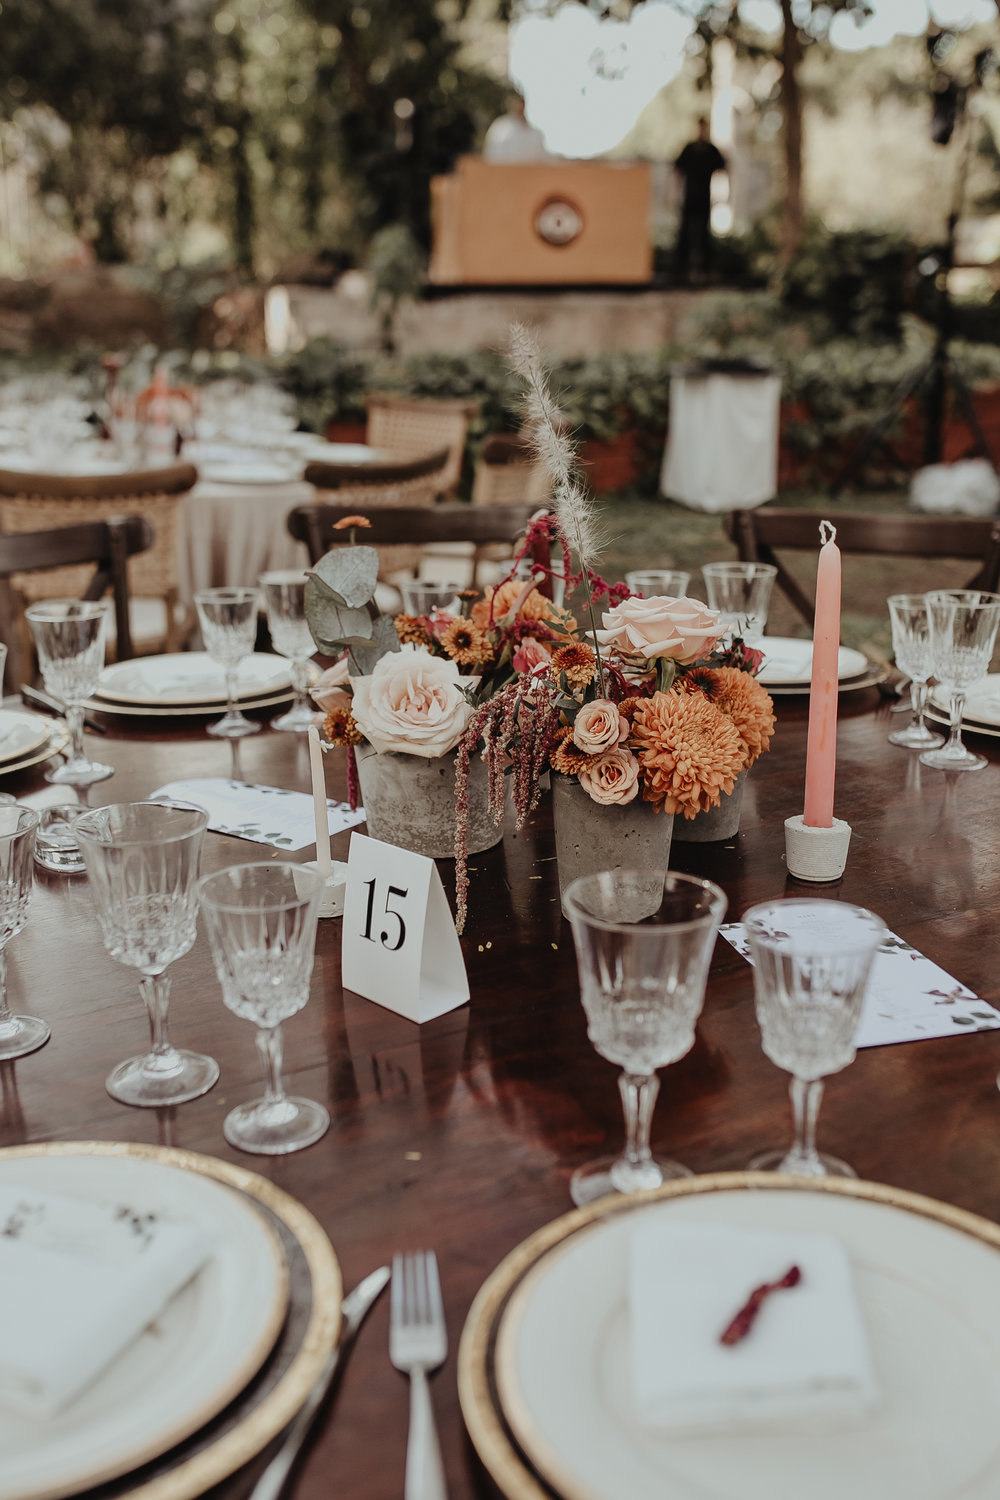 0258p&a_Hacienda__WeddingDestination_Weddingmerida_BodaMexico_FotografoDeBodas_WeddingGay.jpg